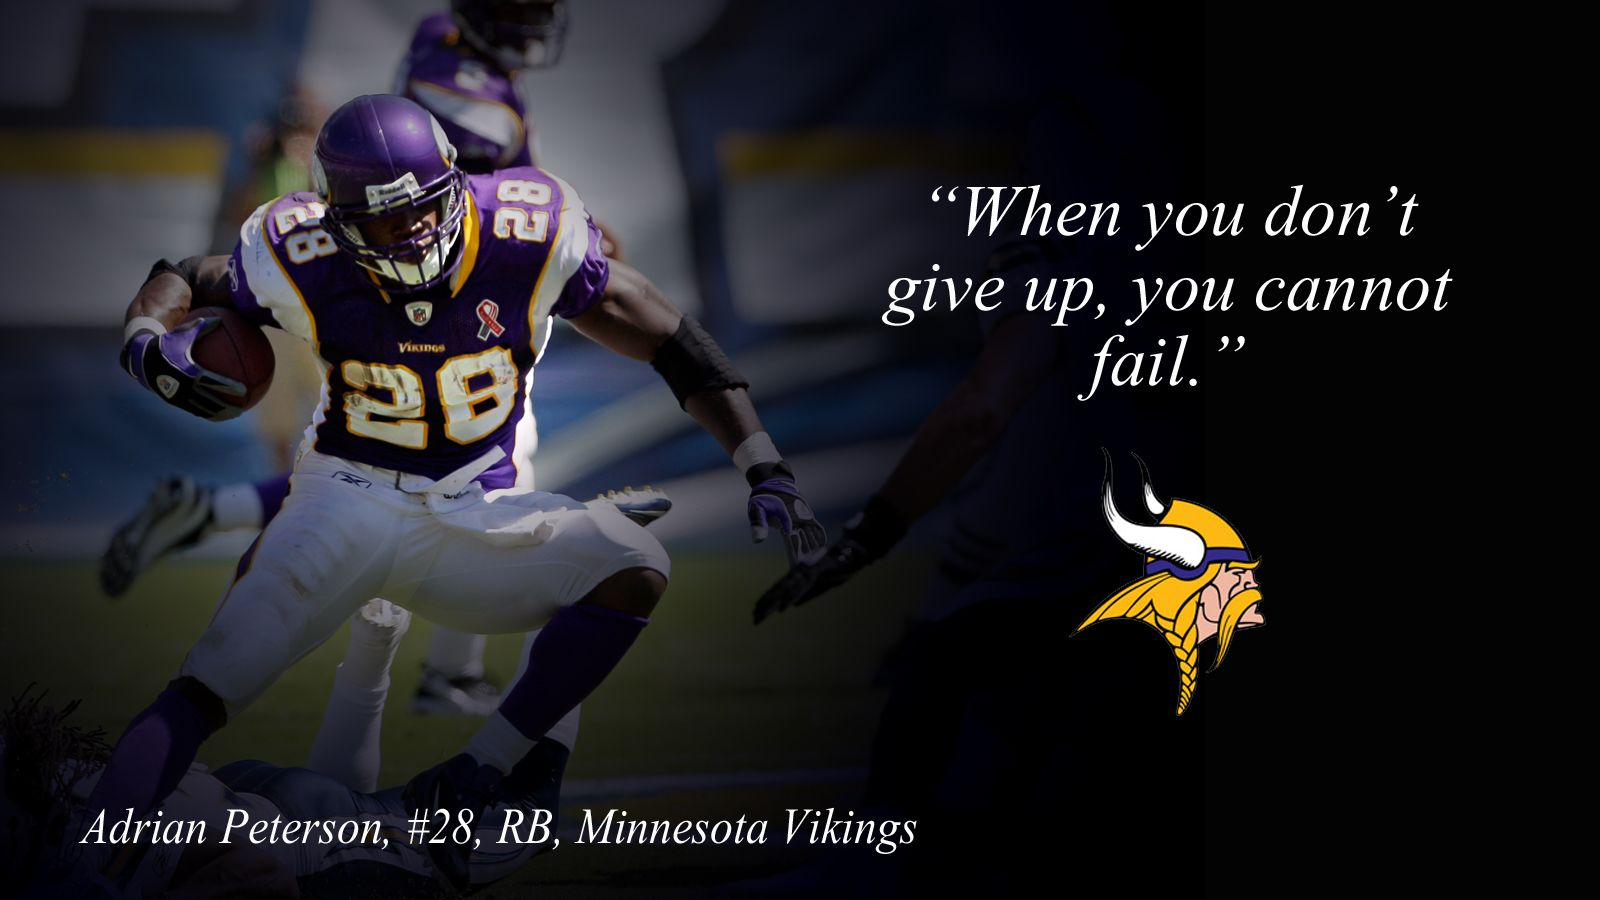 Adrian Peterson Football Quotes Famous Football Quotes Football Motivation